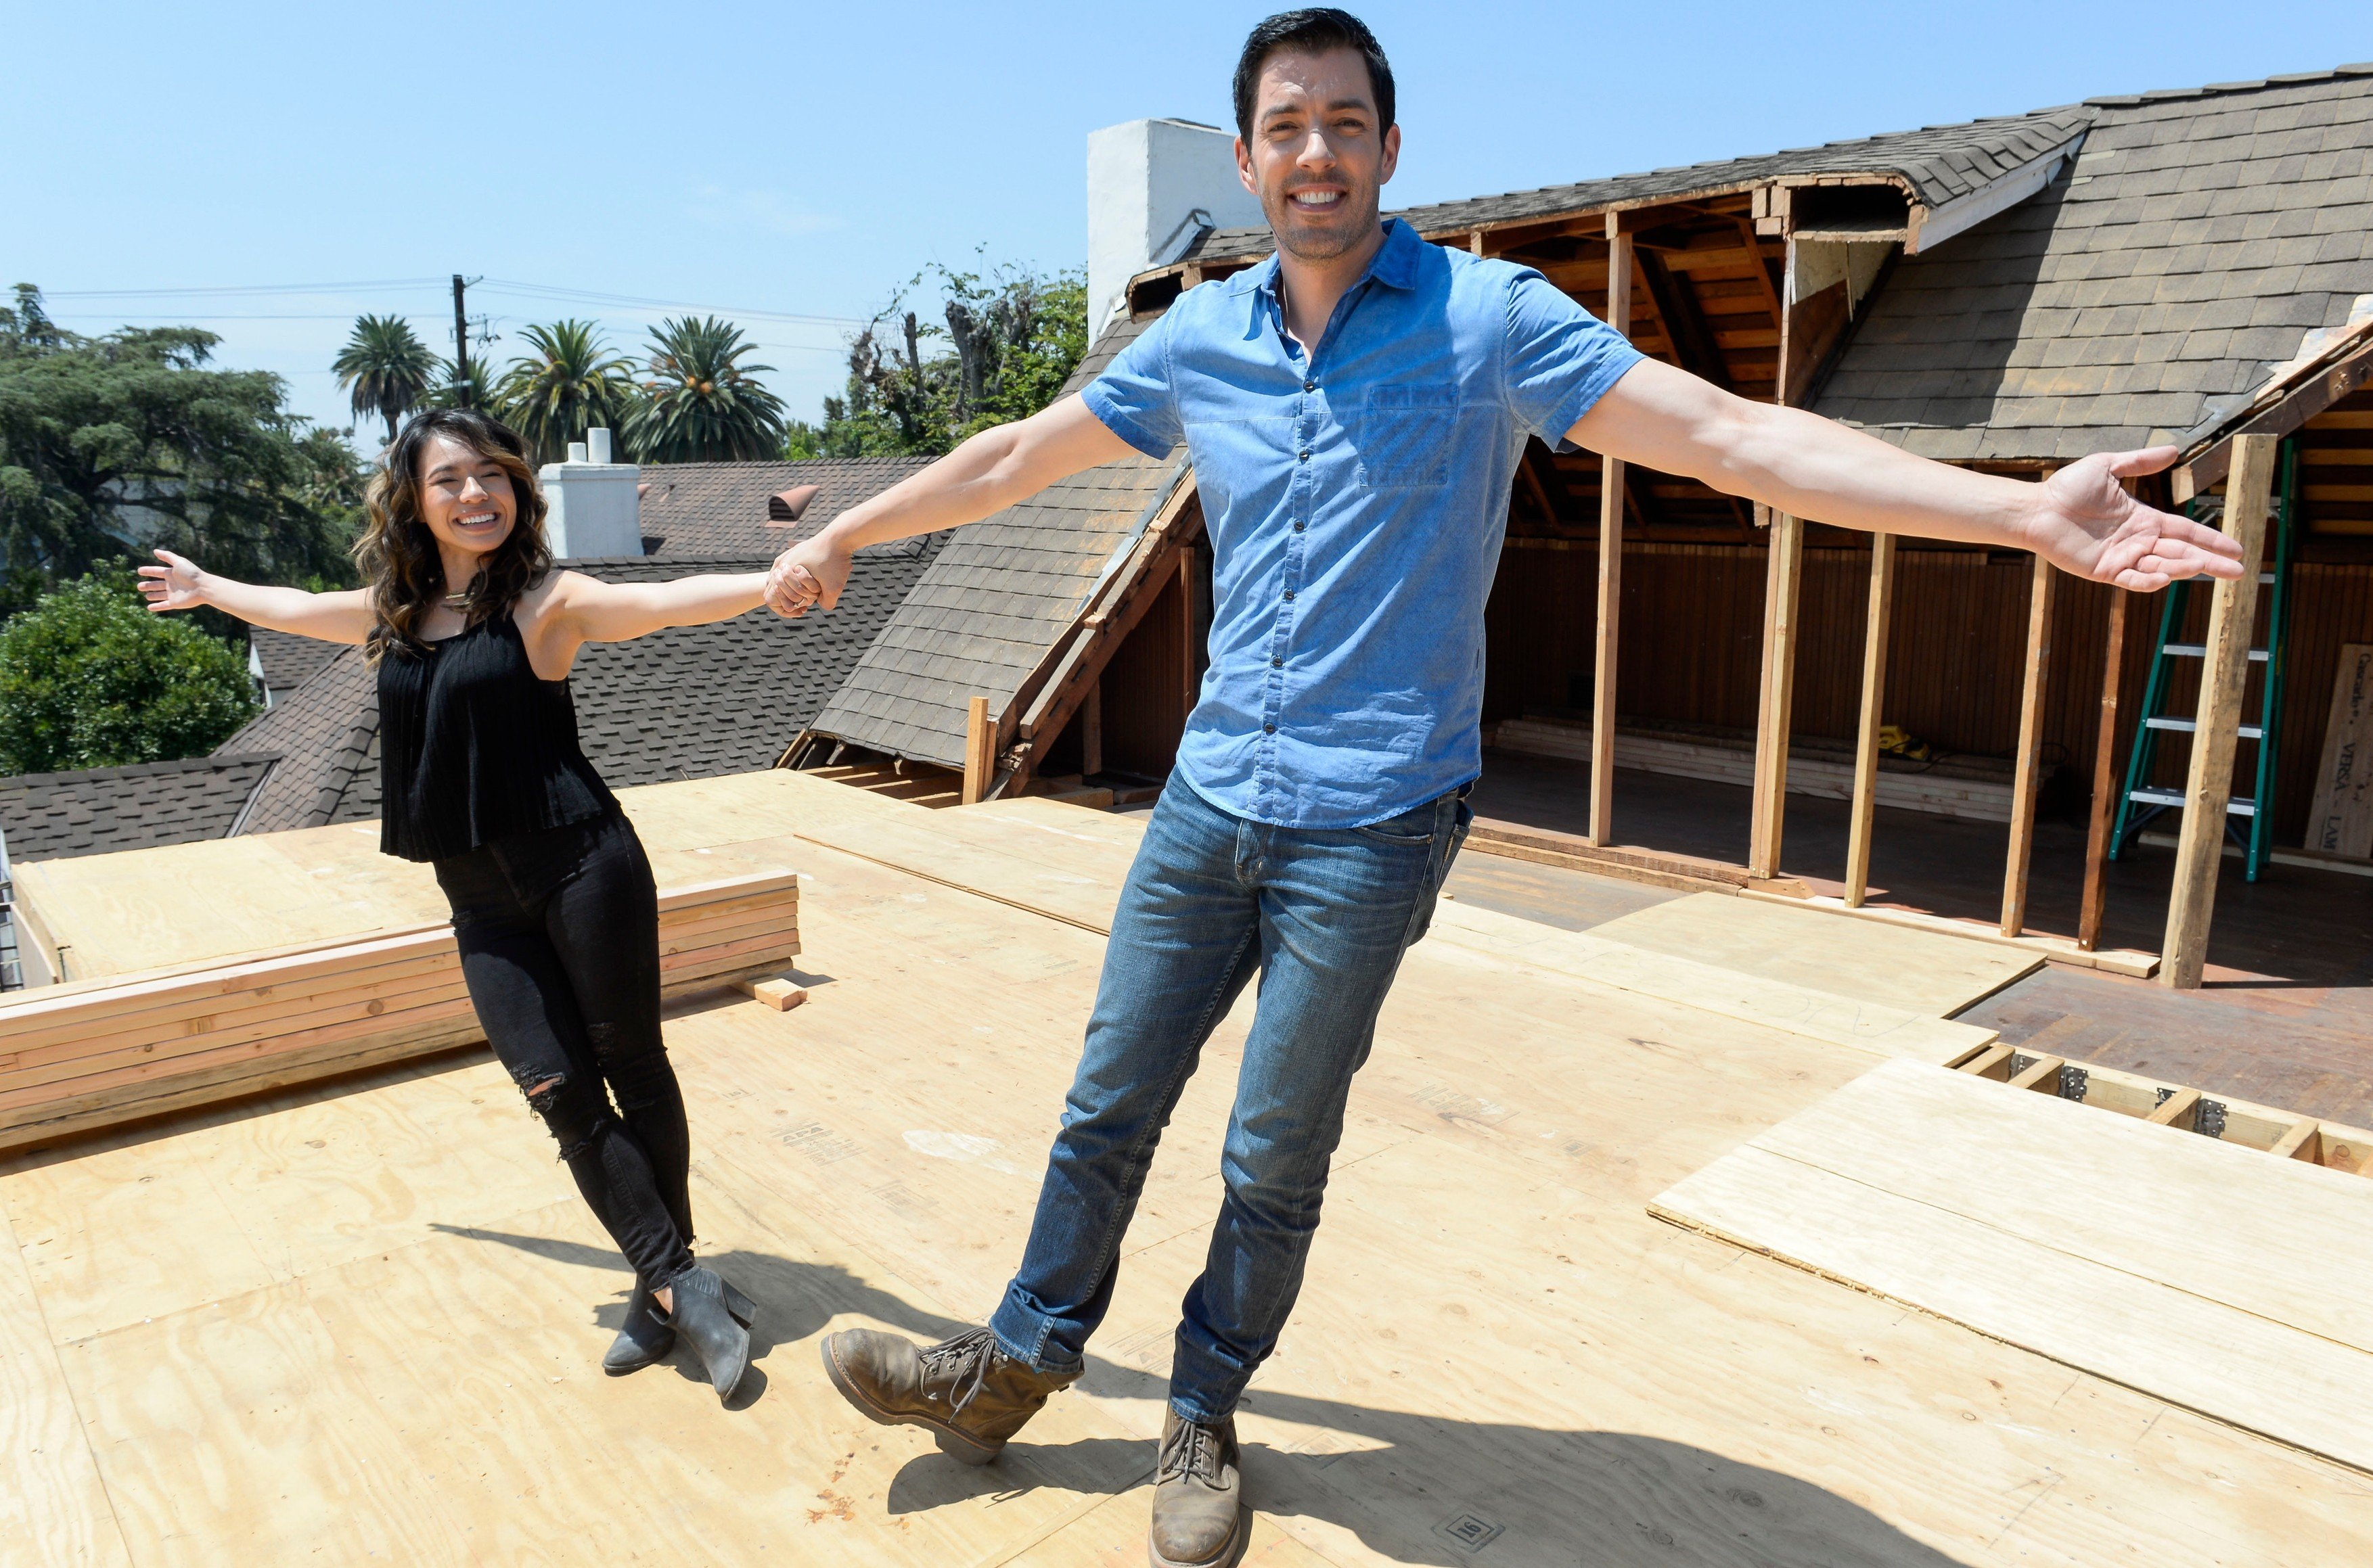 July 19, 2017; Los Angeles, CA, USA; Drew Scott and fiancee Linda Phan during the filming of \